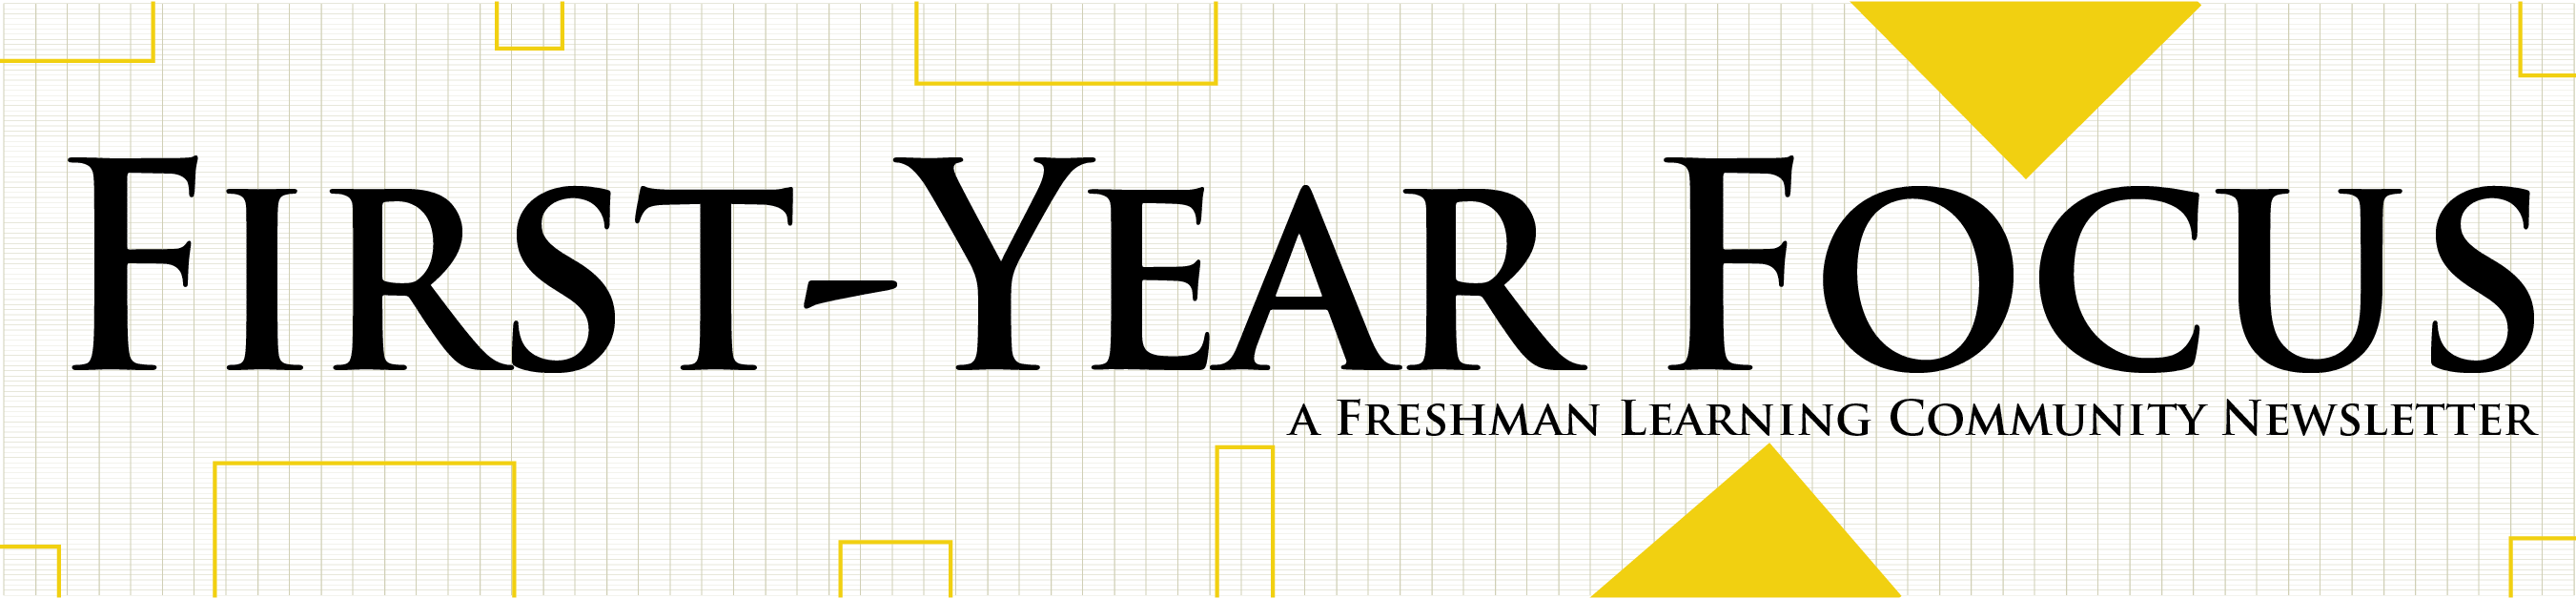 First-Year Focus Newsletter banner